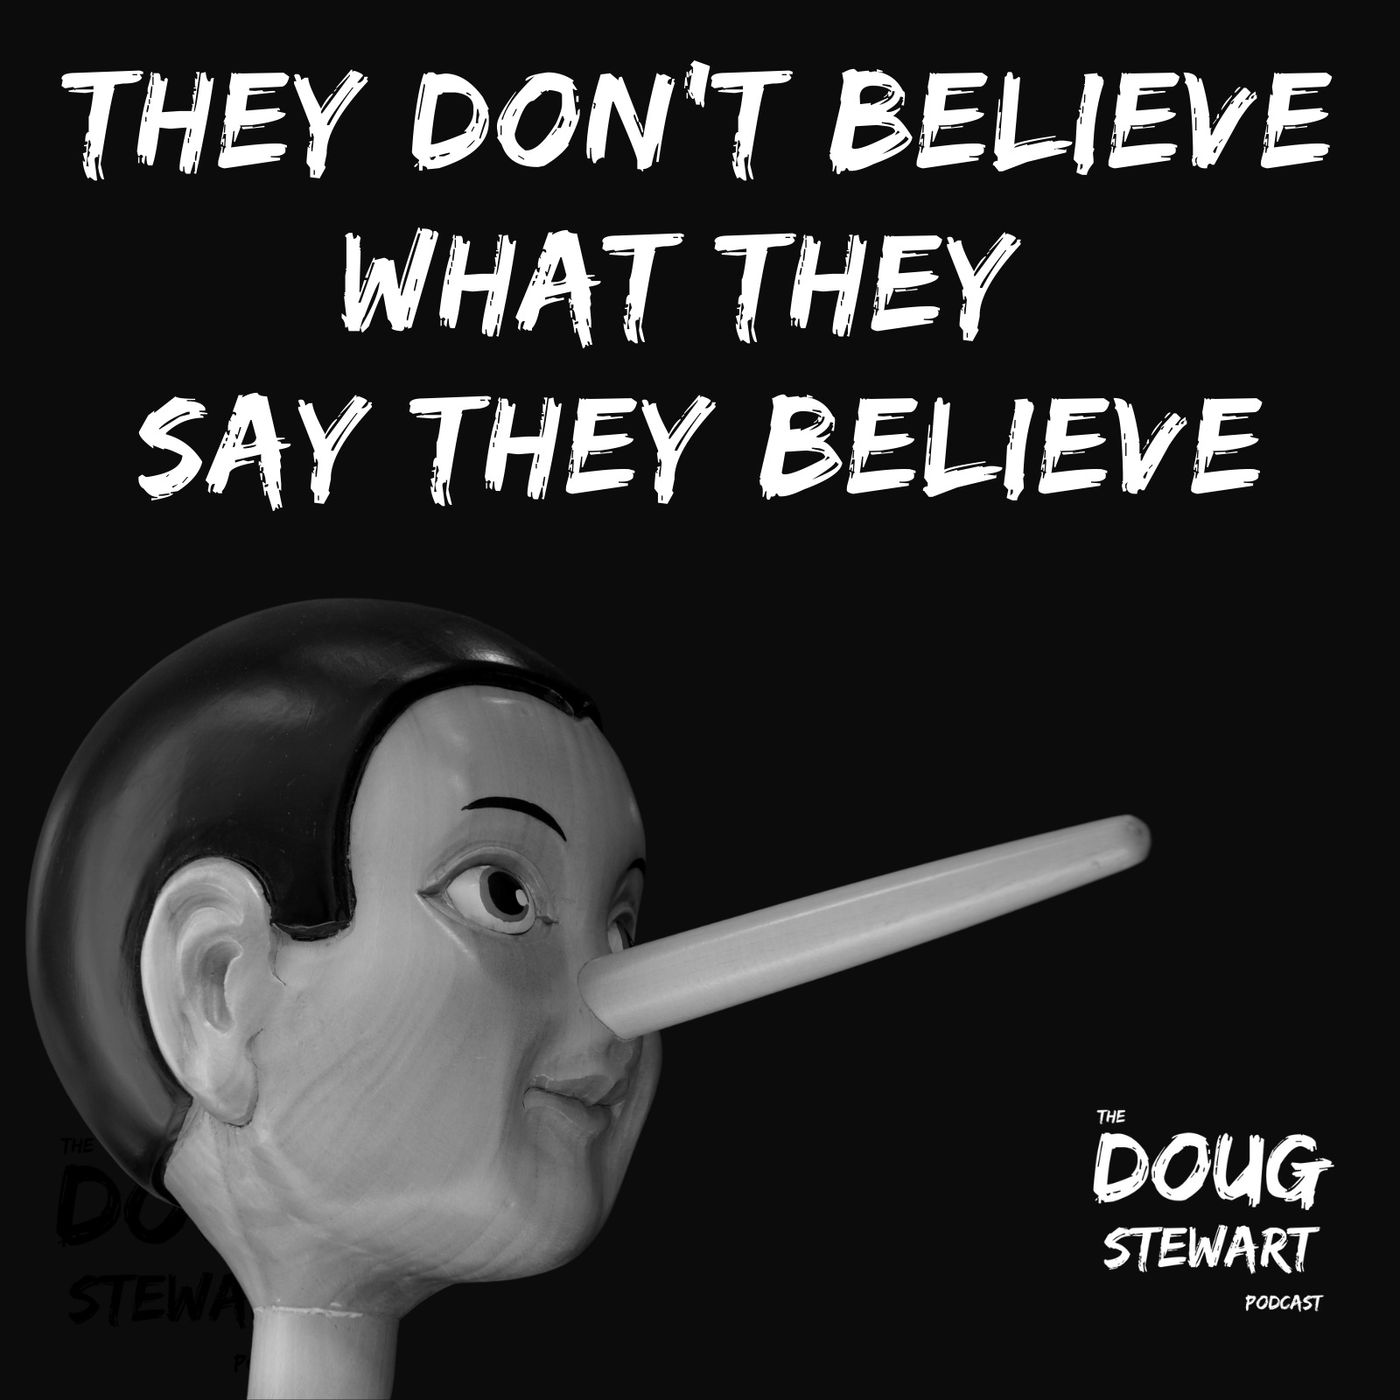 They Don't Believe What The Say They Believe